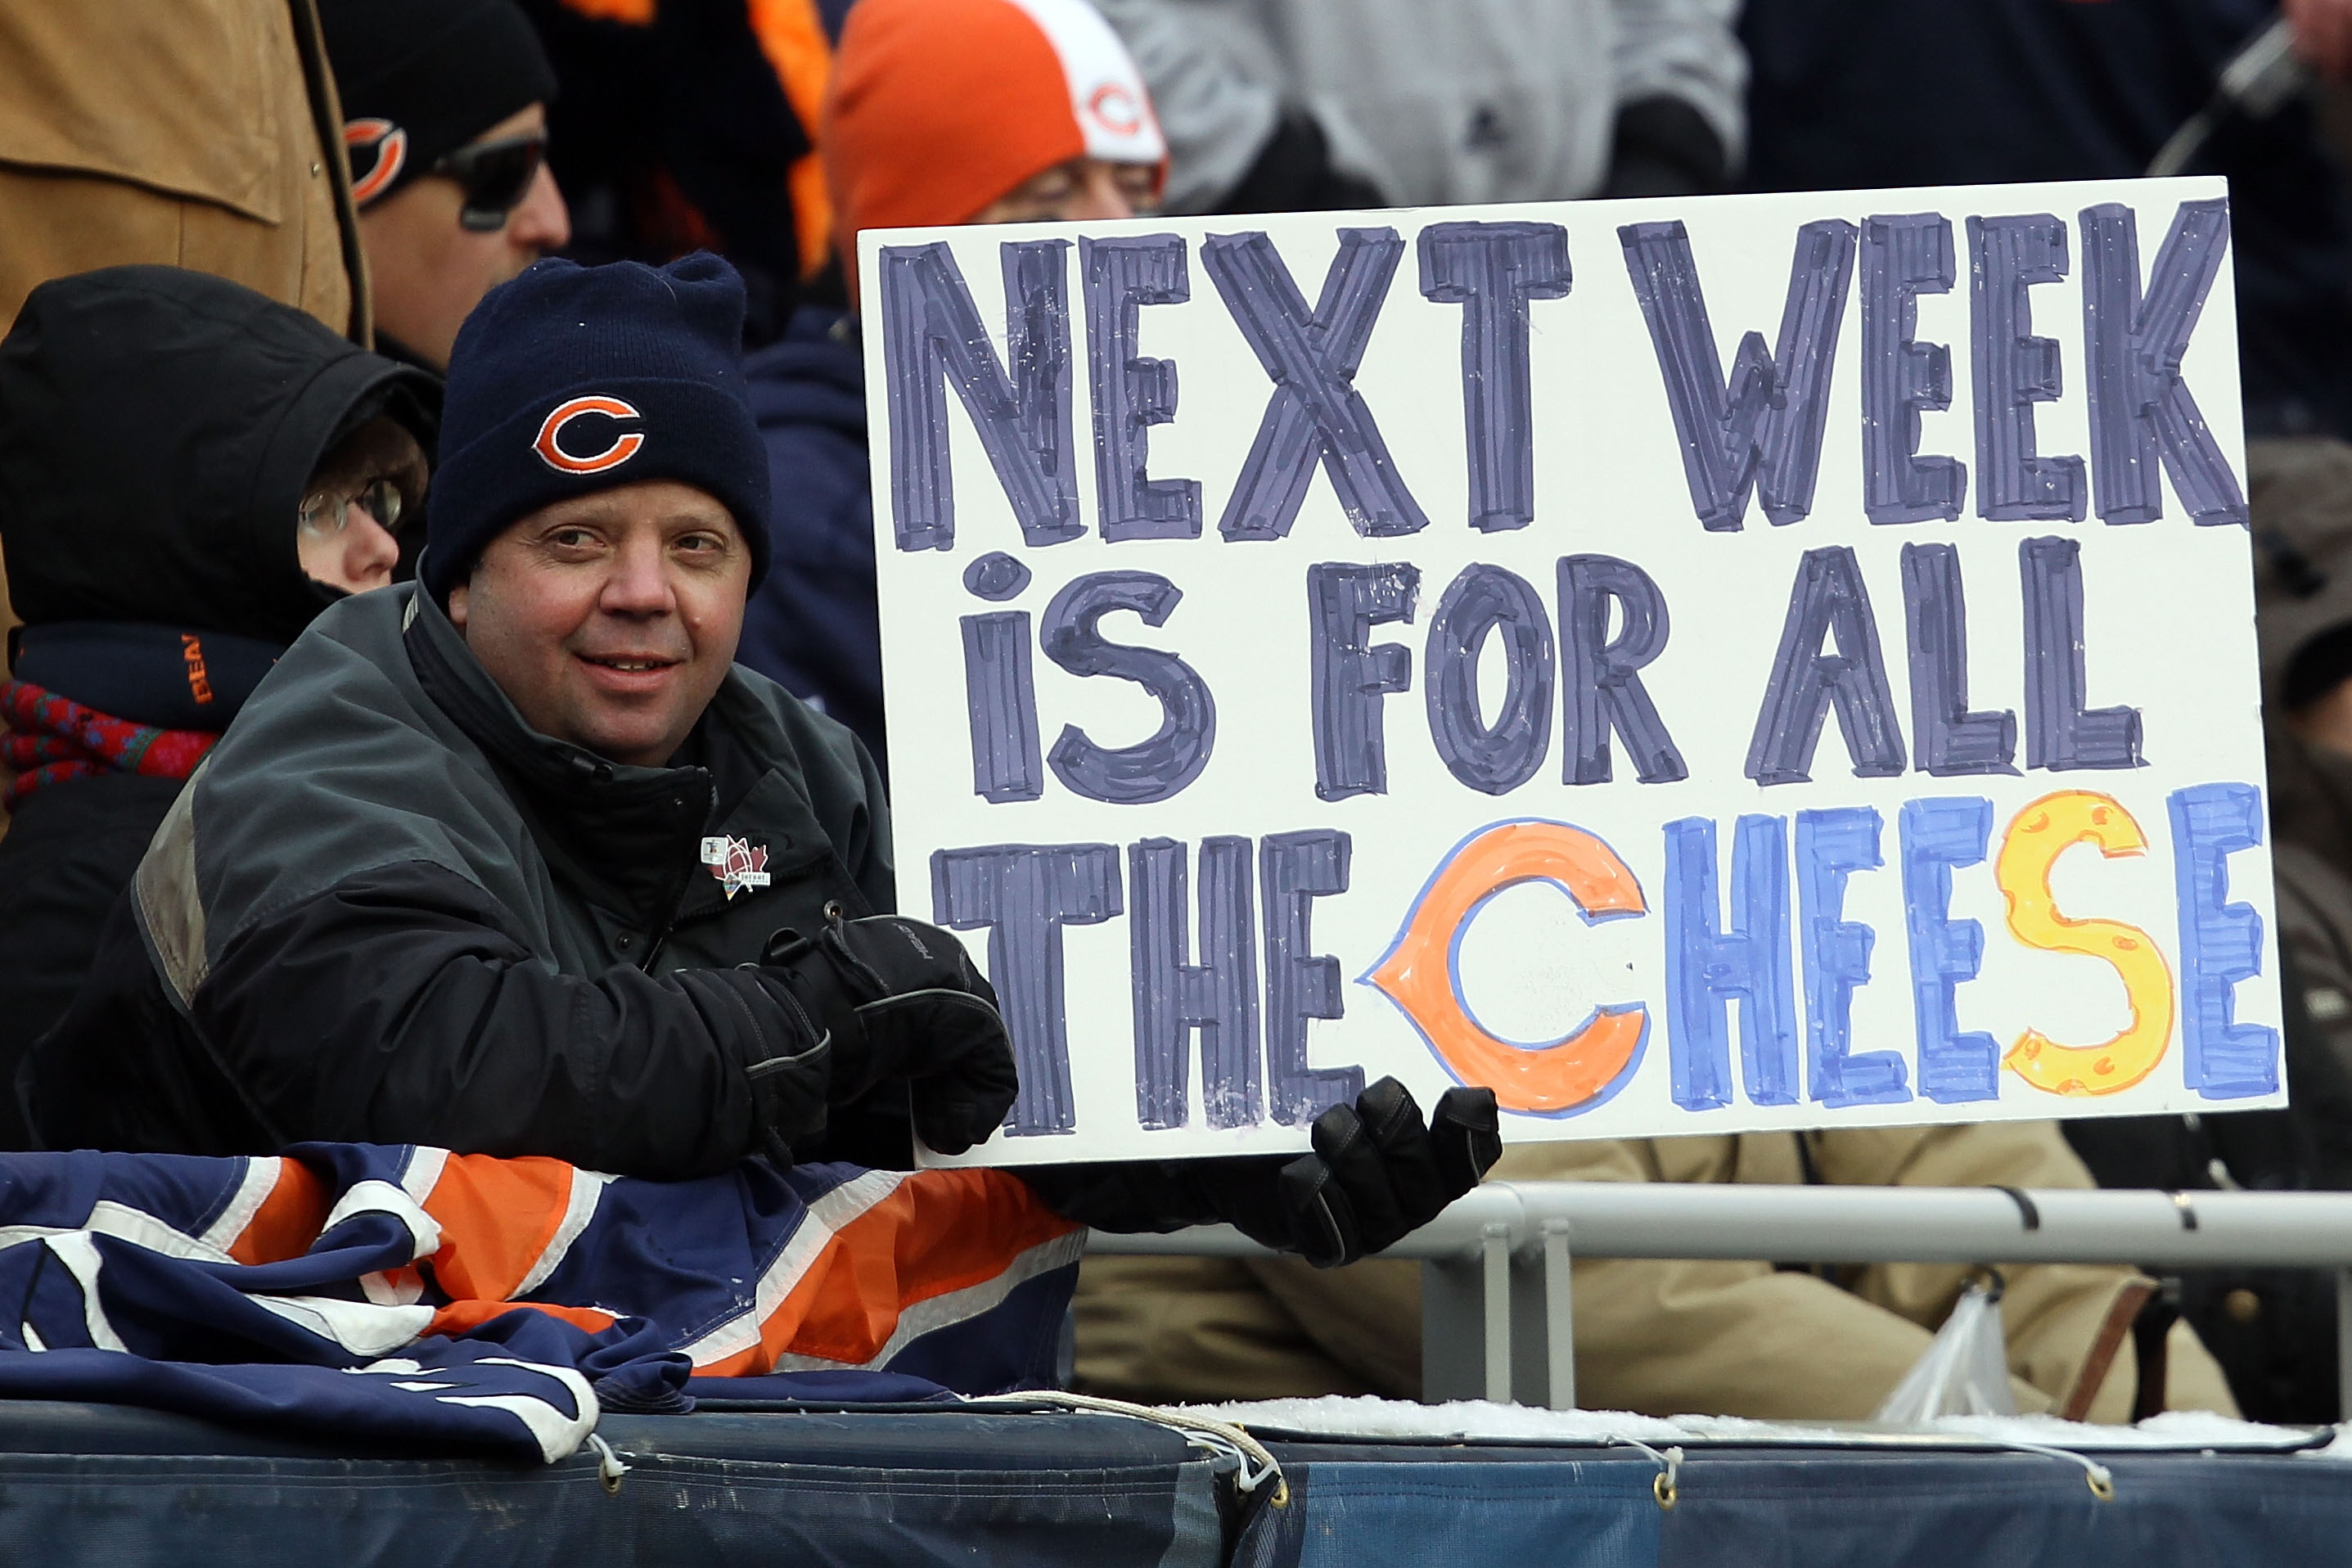 CHICAGO, IL - JANUARY 16:  A Chicago Bears fan holds up a sign previewing next week's NFC championship game between the Bears and the Green Bay Packers at Soldier Field on January 16, 2011 in Chicago, Illinois.  (Photo by Jonathan Daniel/Getty Images)